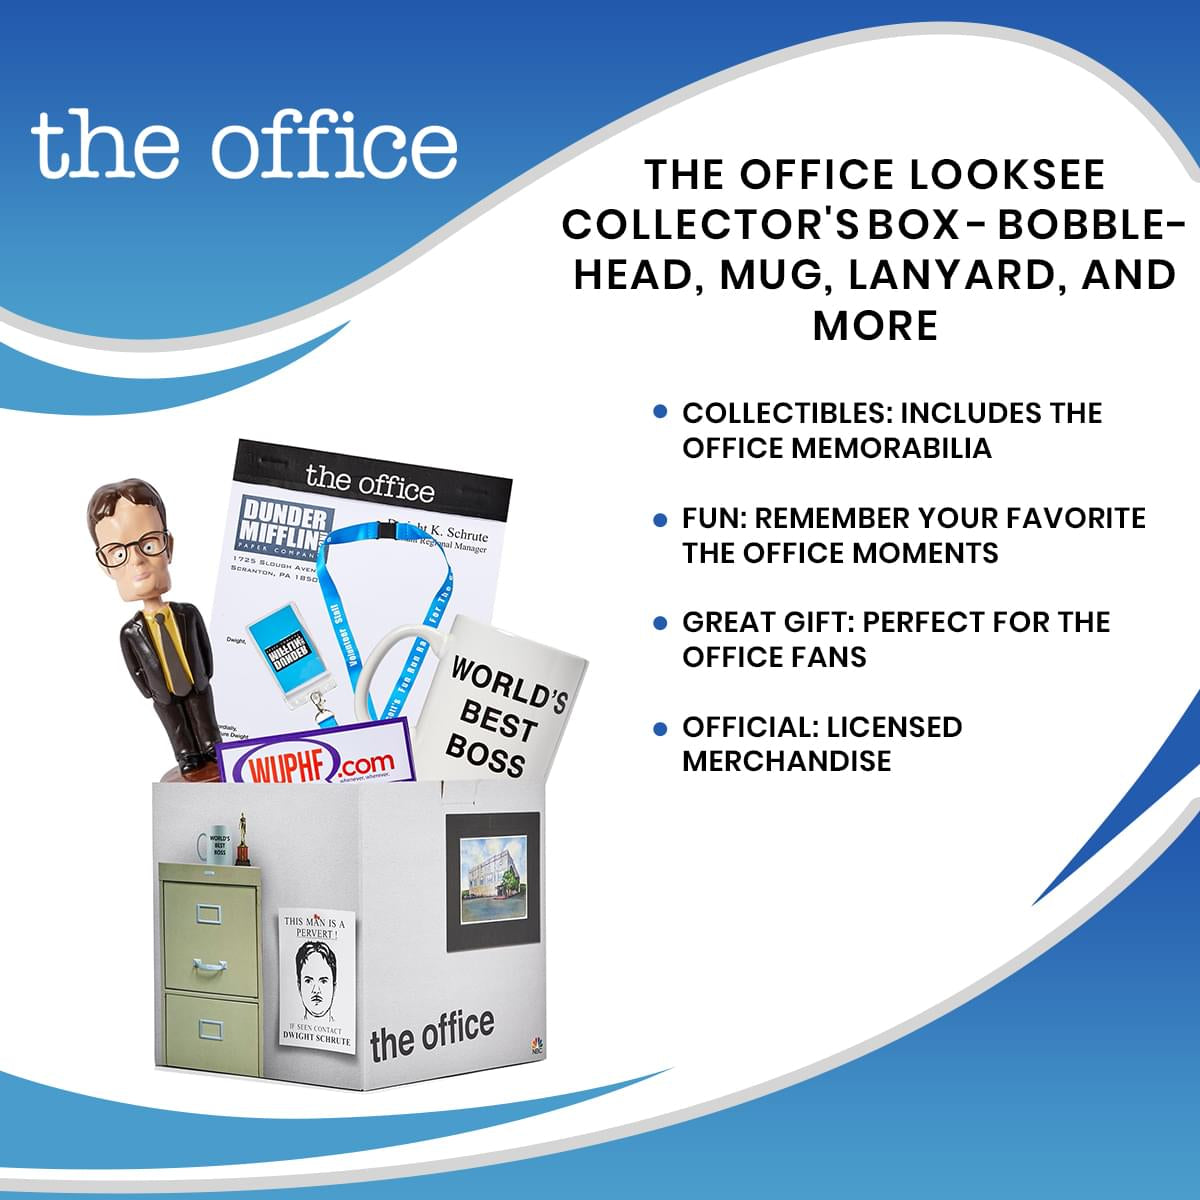 The Office LookSee Collector's Mystery Gift Box - Bobblehead, Mug, Lanyard, And More